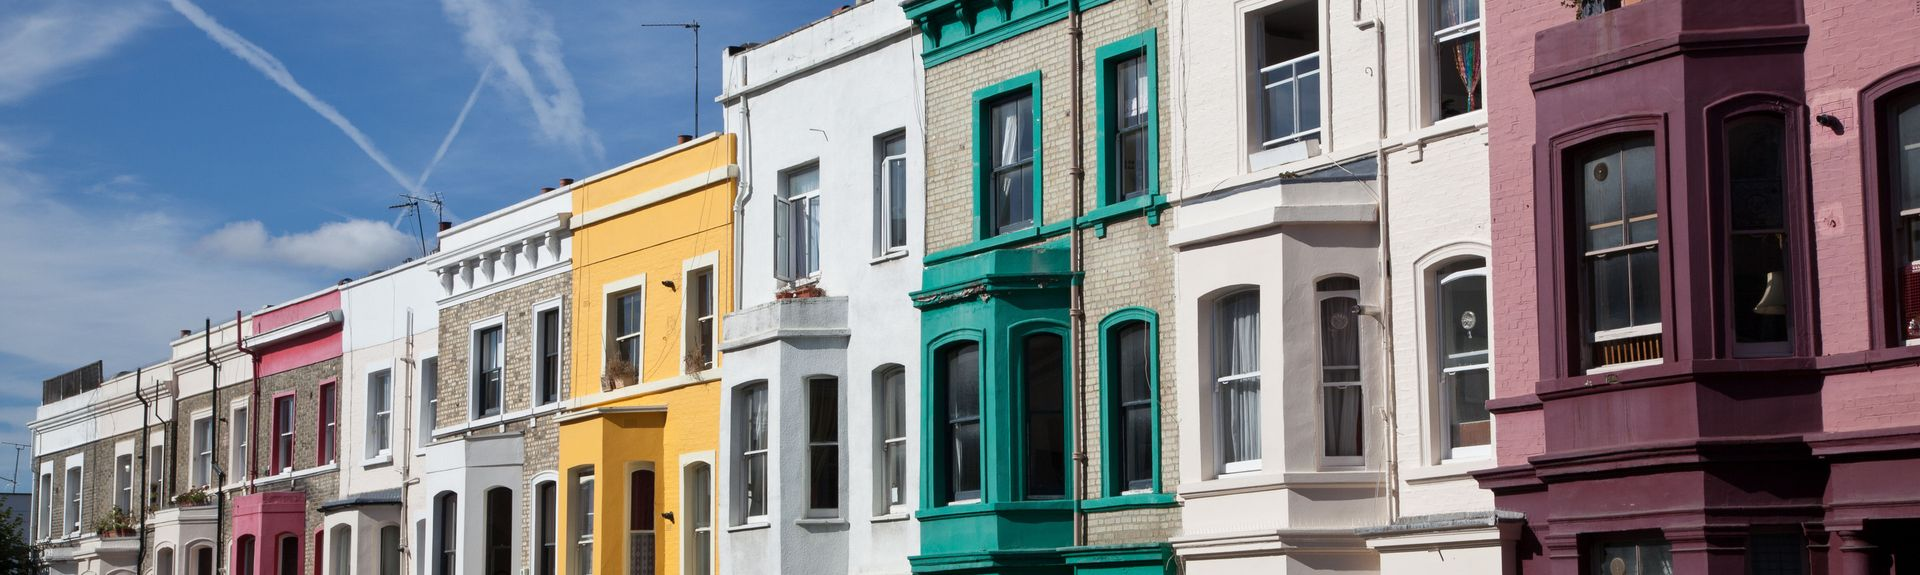 Notting Hill, London, UK